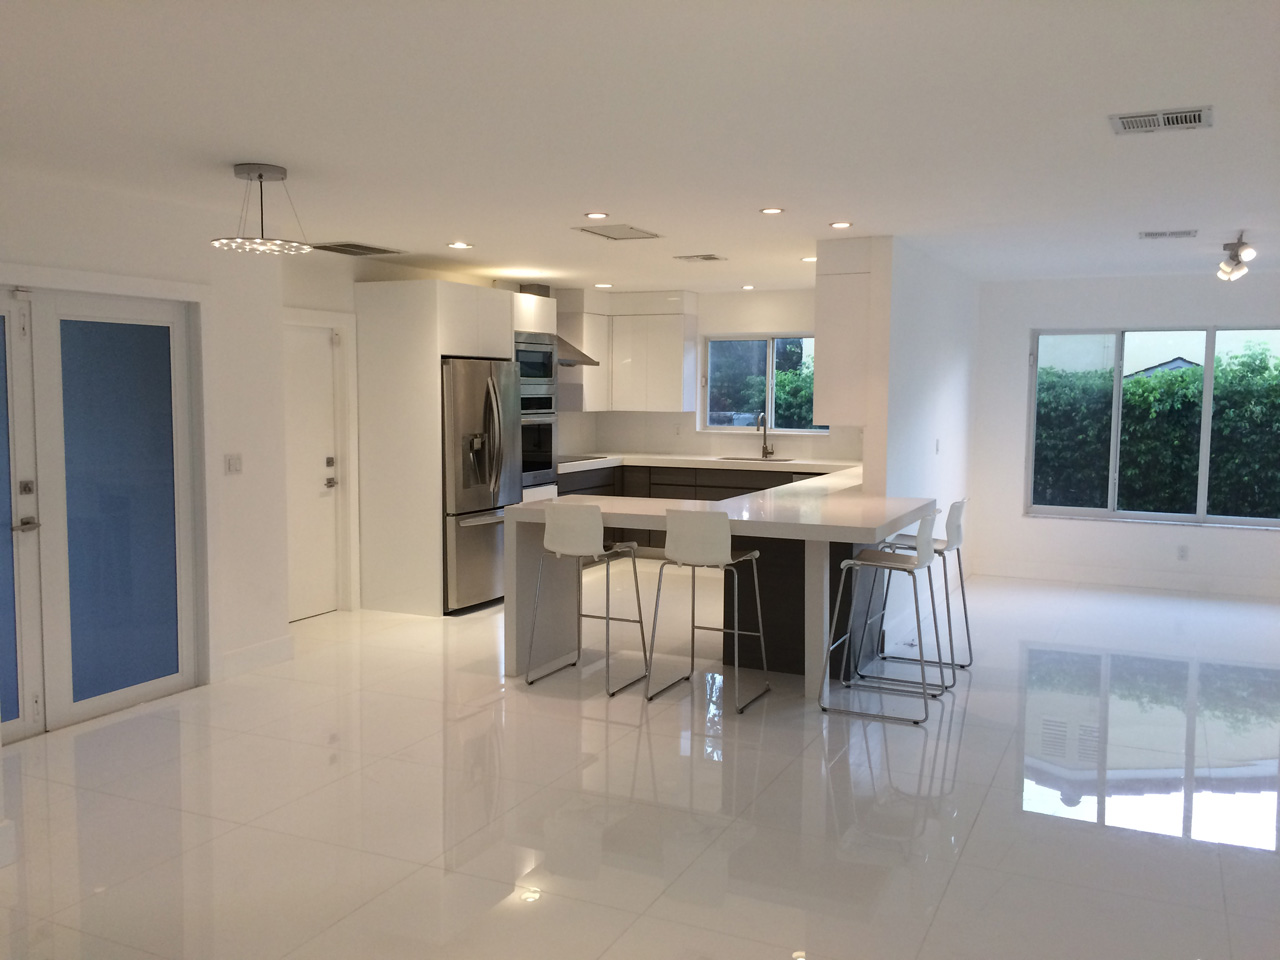 Brand new kitchen fit for a chef. Home for sale in Miami. Keystone Point Waterfront Villa For Sale